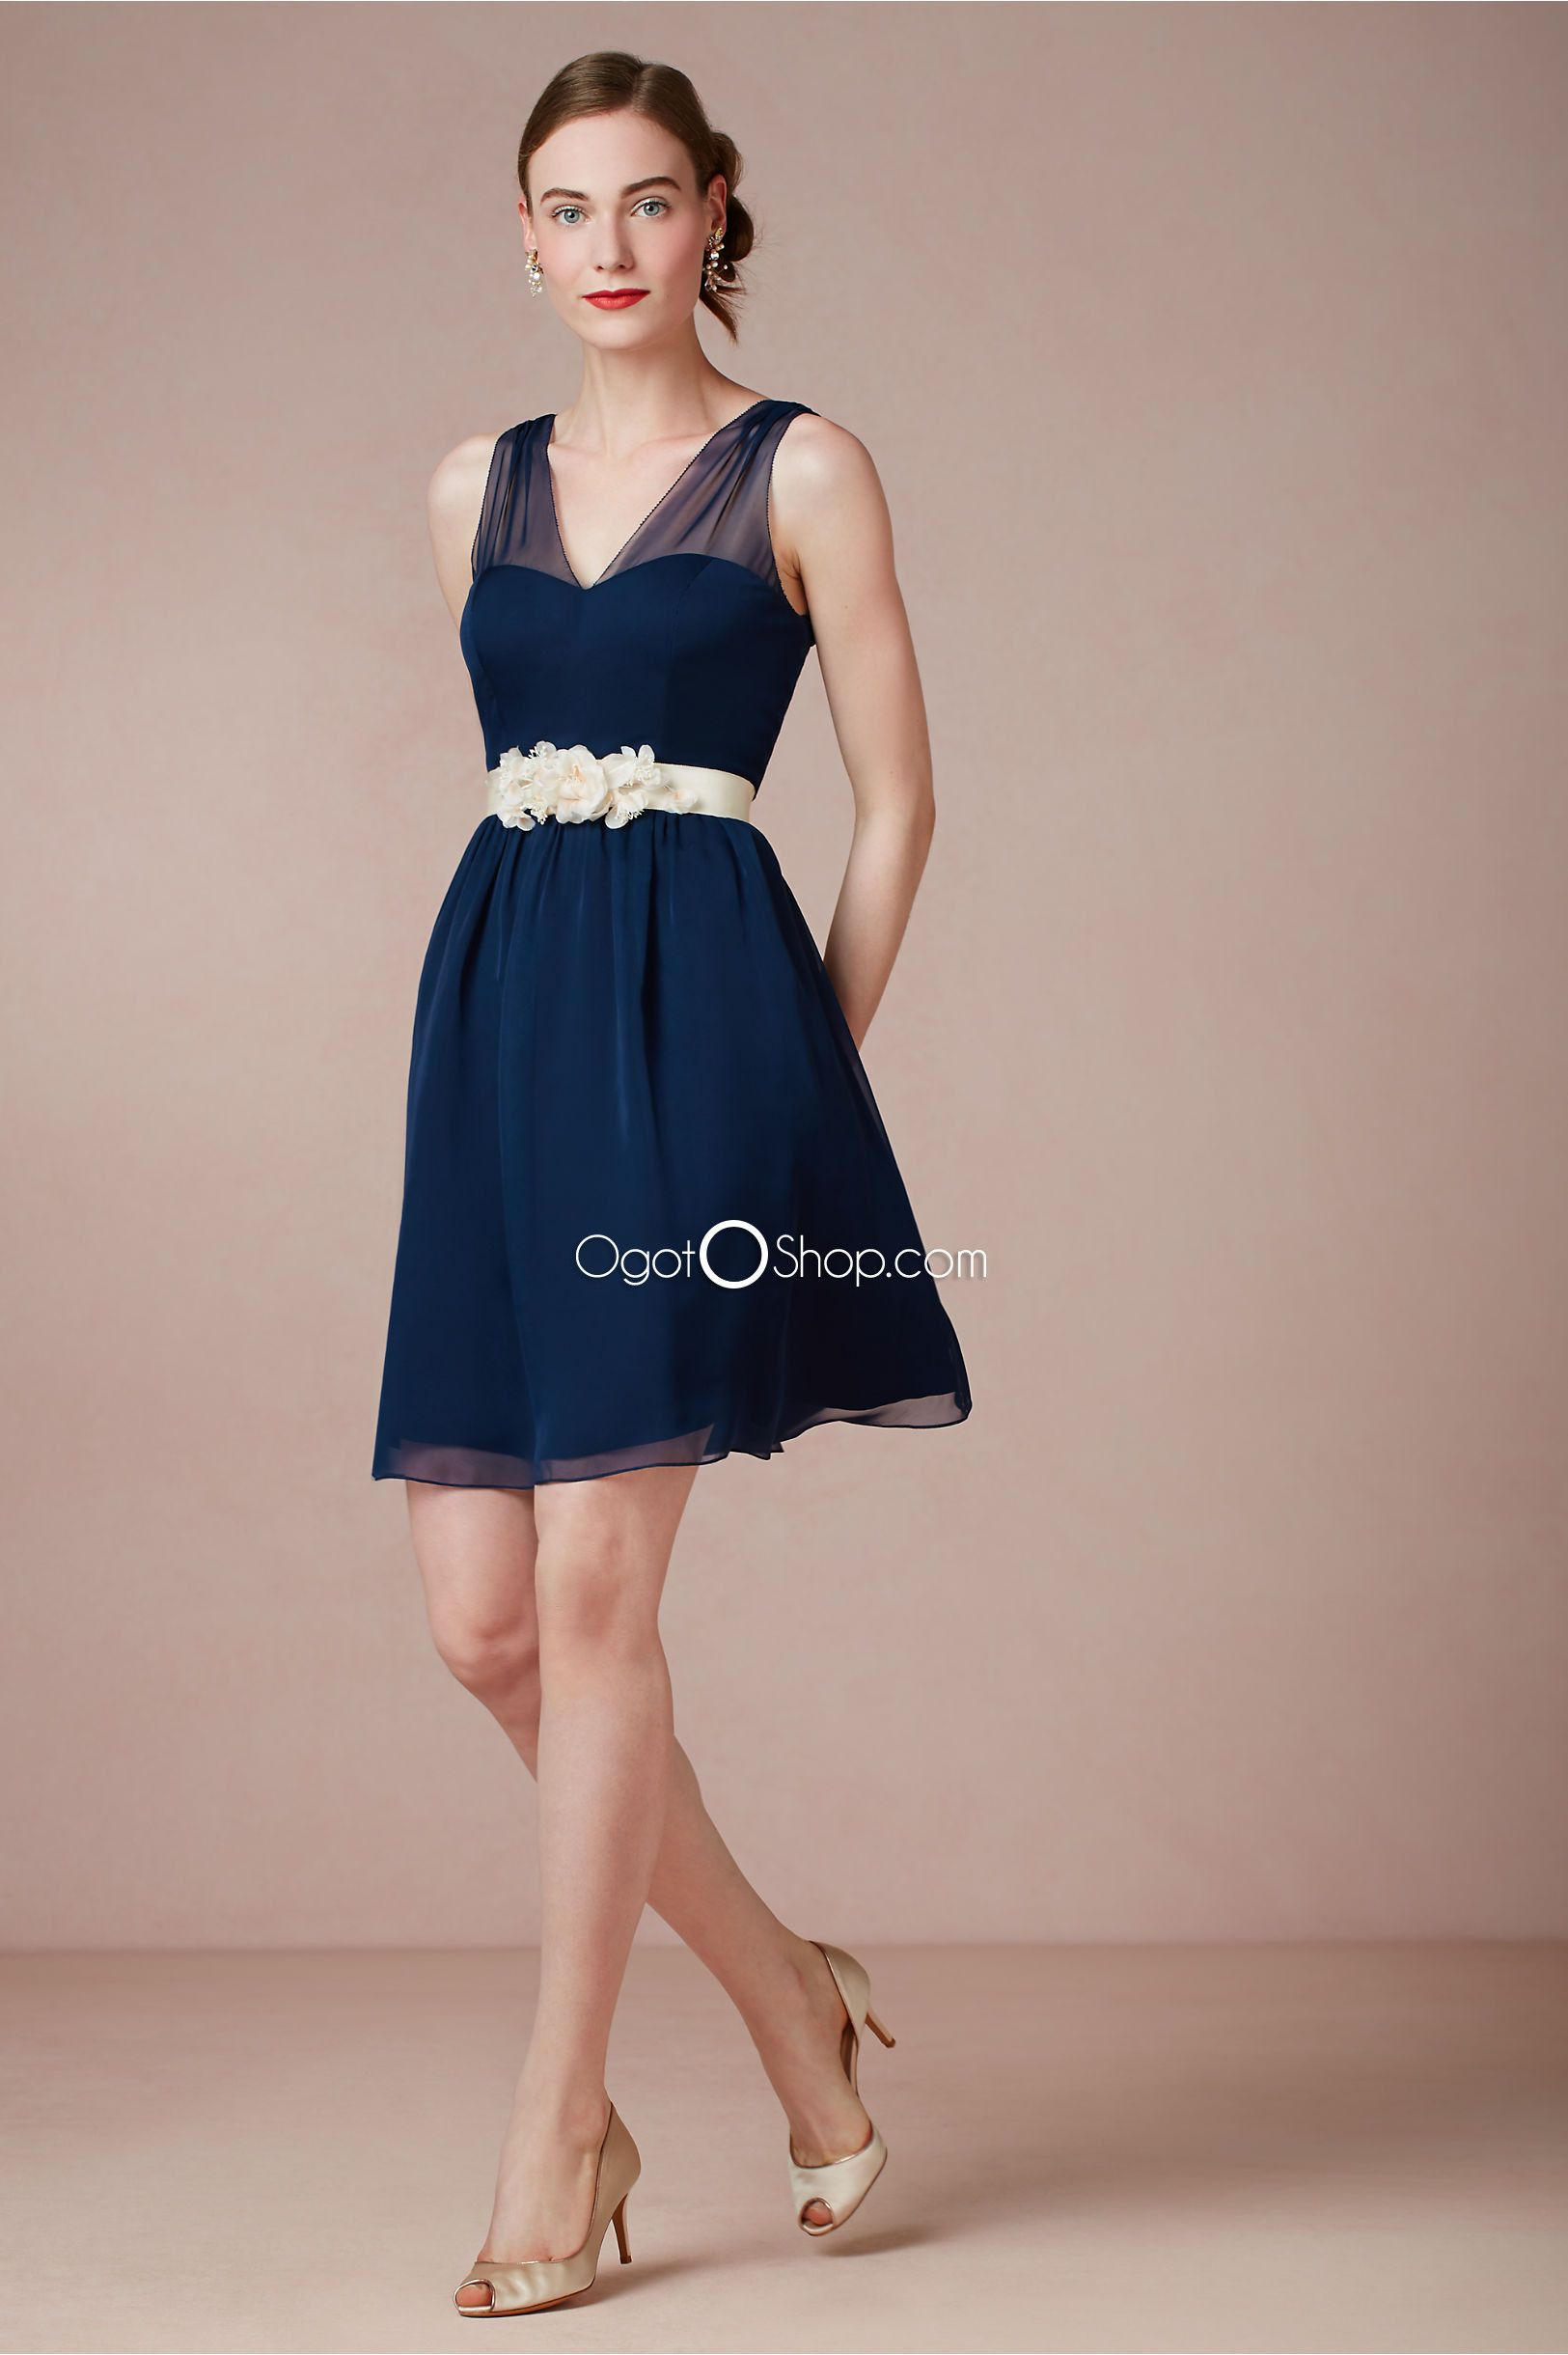 Navy Blue Bridesmaid Dress Google Search This Is Cute But Not The Sash I Think Maybe A Sparkly Instead